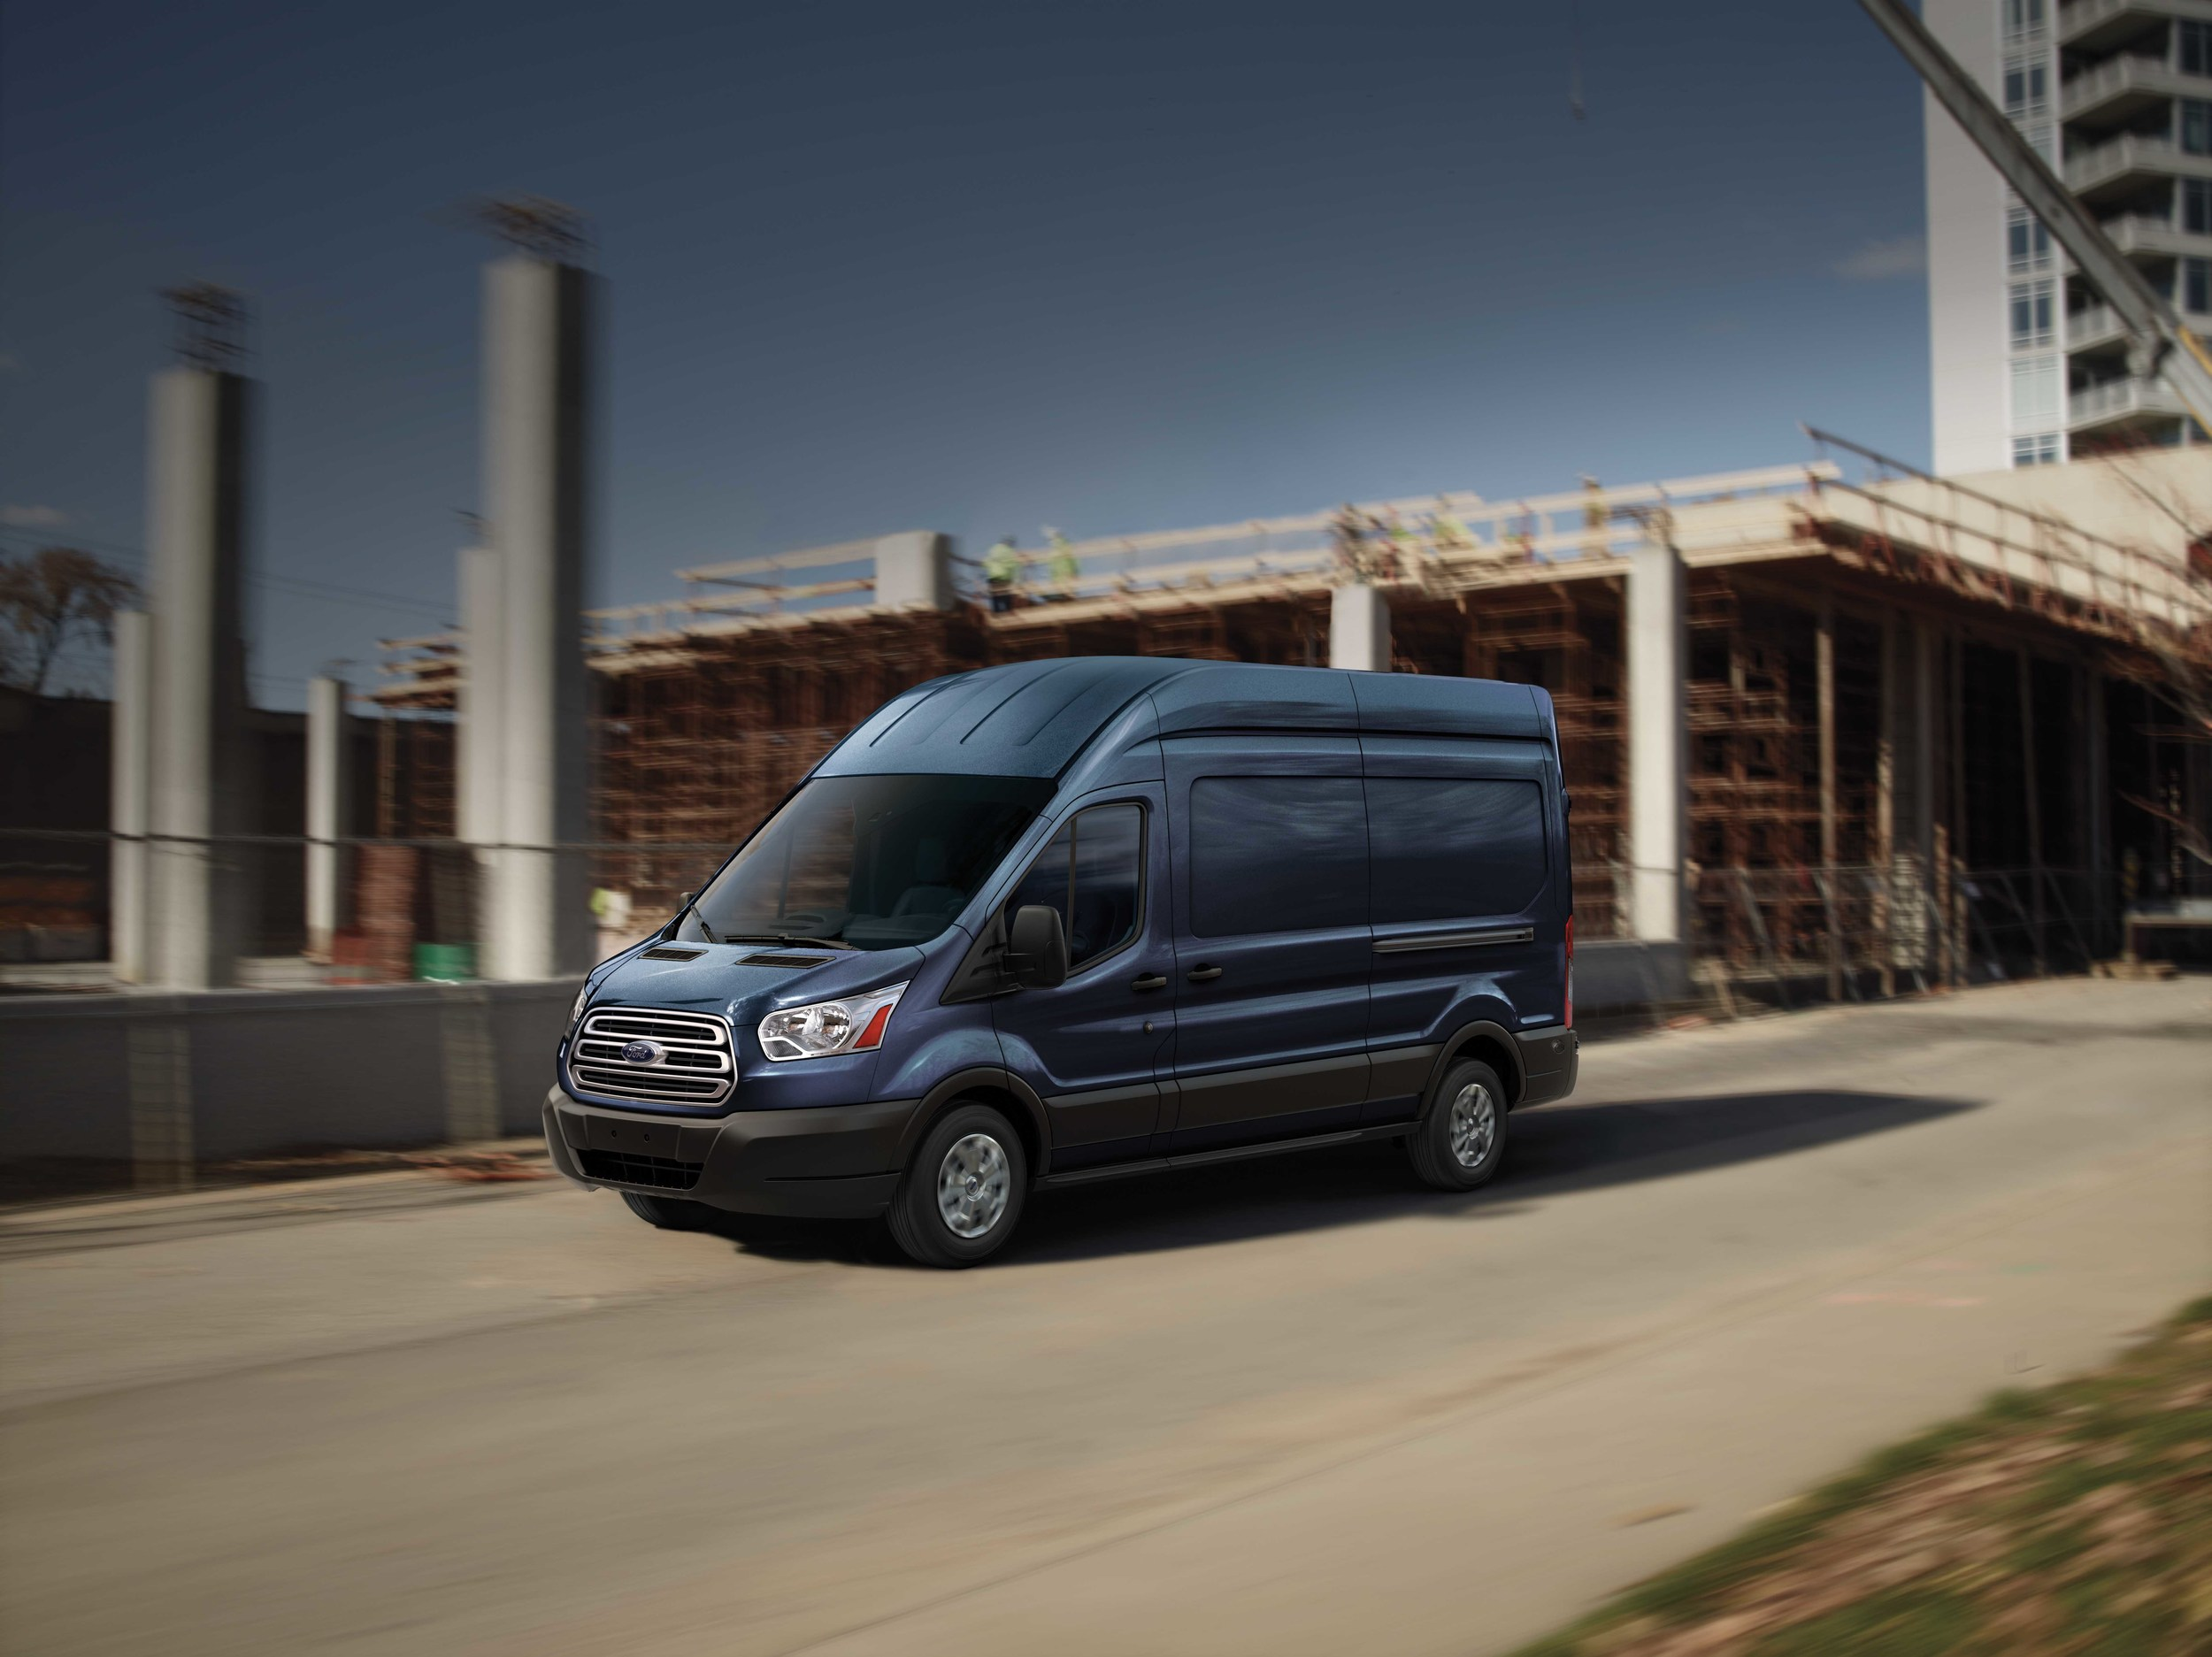 2016 ford transit connect updates - 2014 Ford Transit Wagon